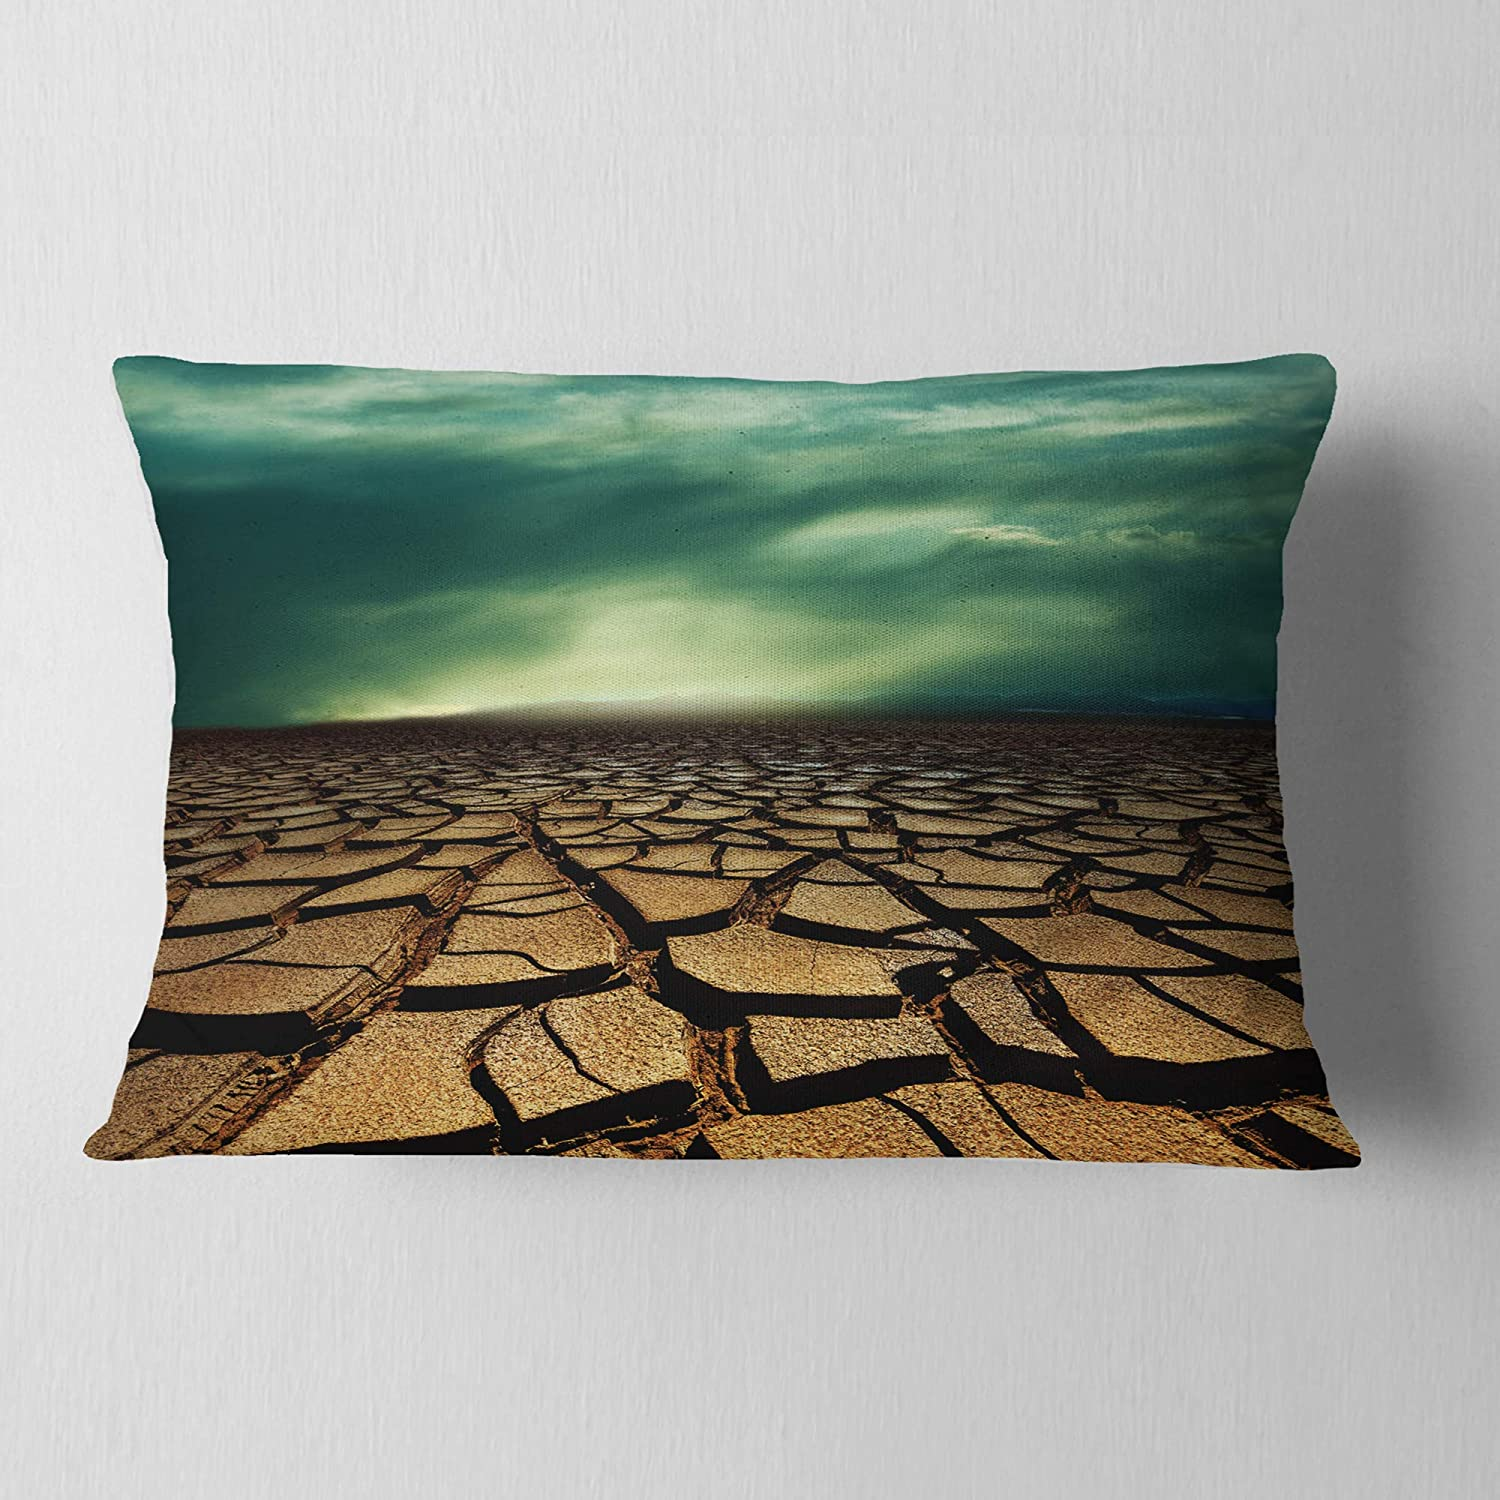 In Designart Cu12790 12 20 Drought Land Under Dramatic Blue Sky African Landscape Printed Lumbar Cushion Cover For Living Room X 20 In Sofa Throw Pillow 12 In